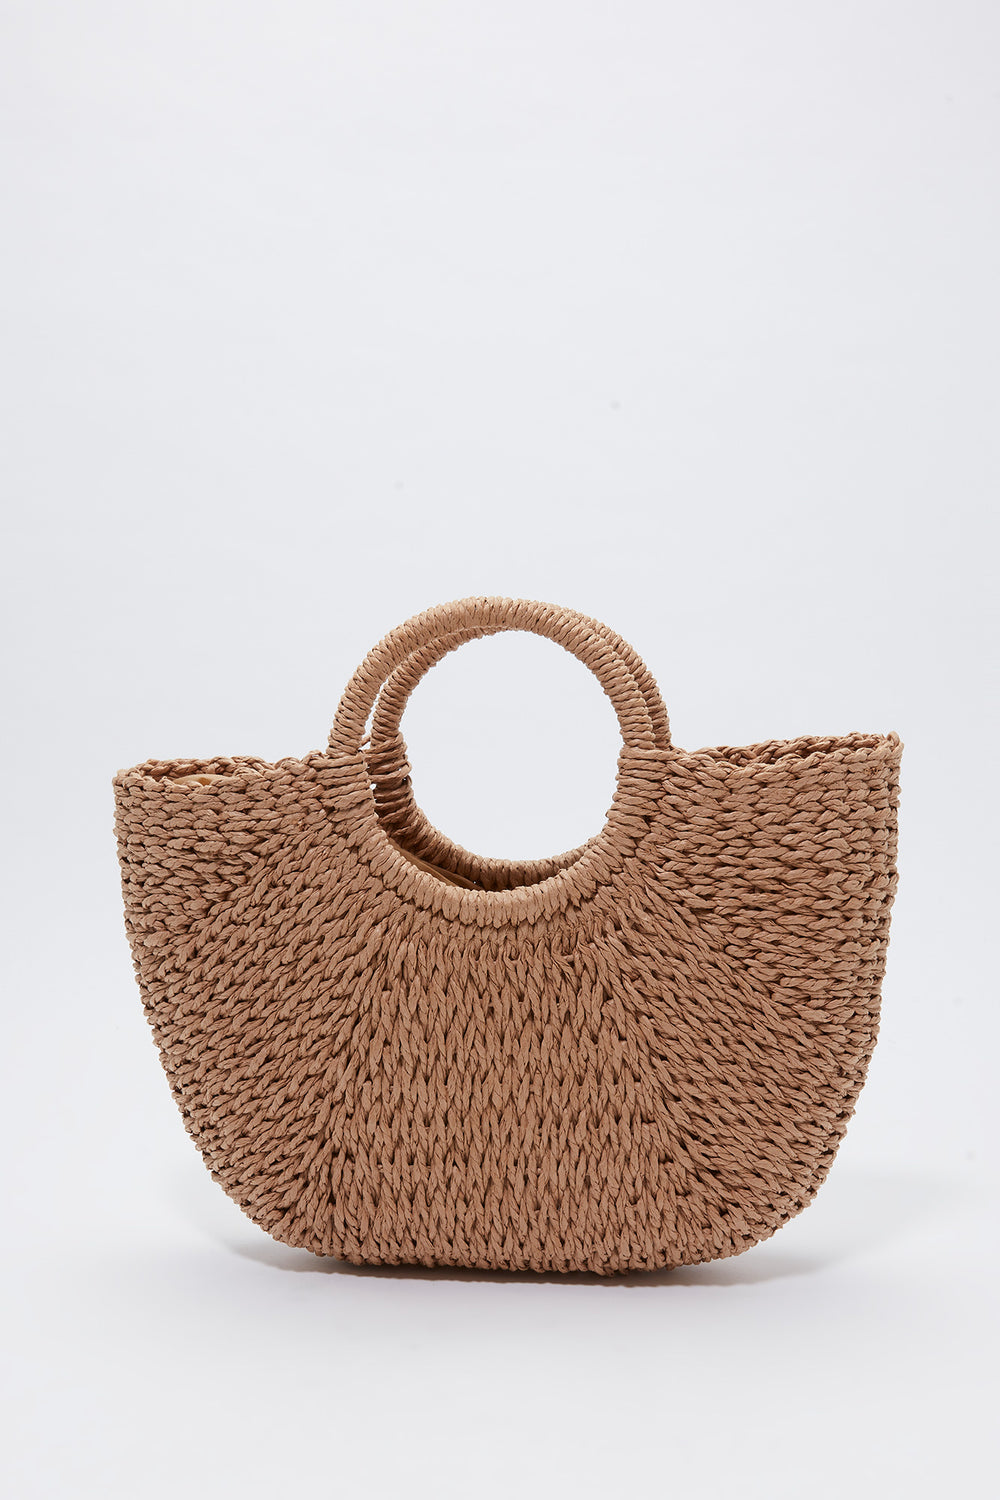 Wicker Shoulder Bag Natural